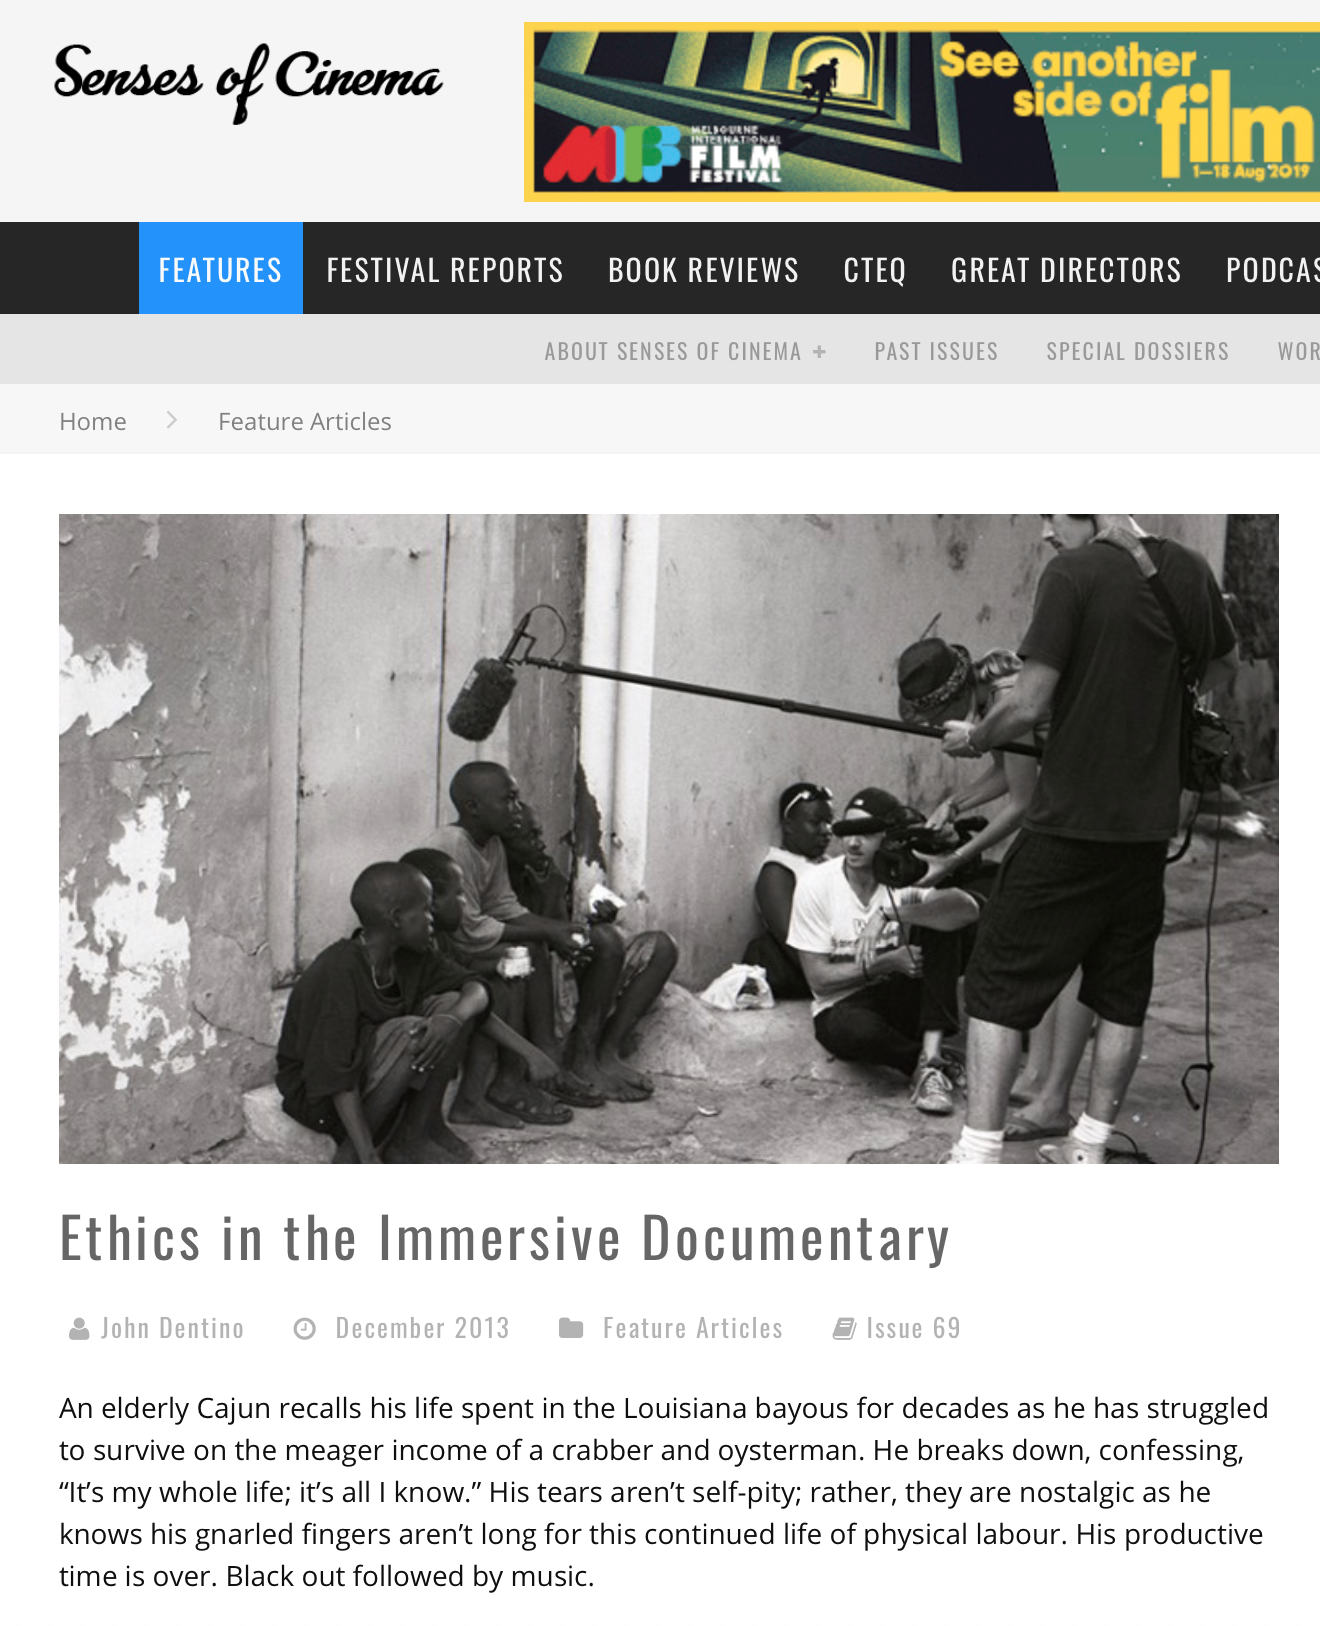 Ethics in the Immersive Documentary